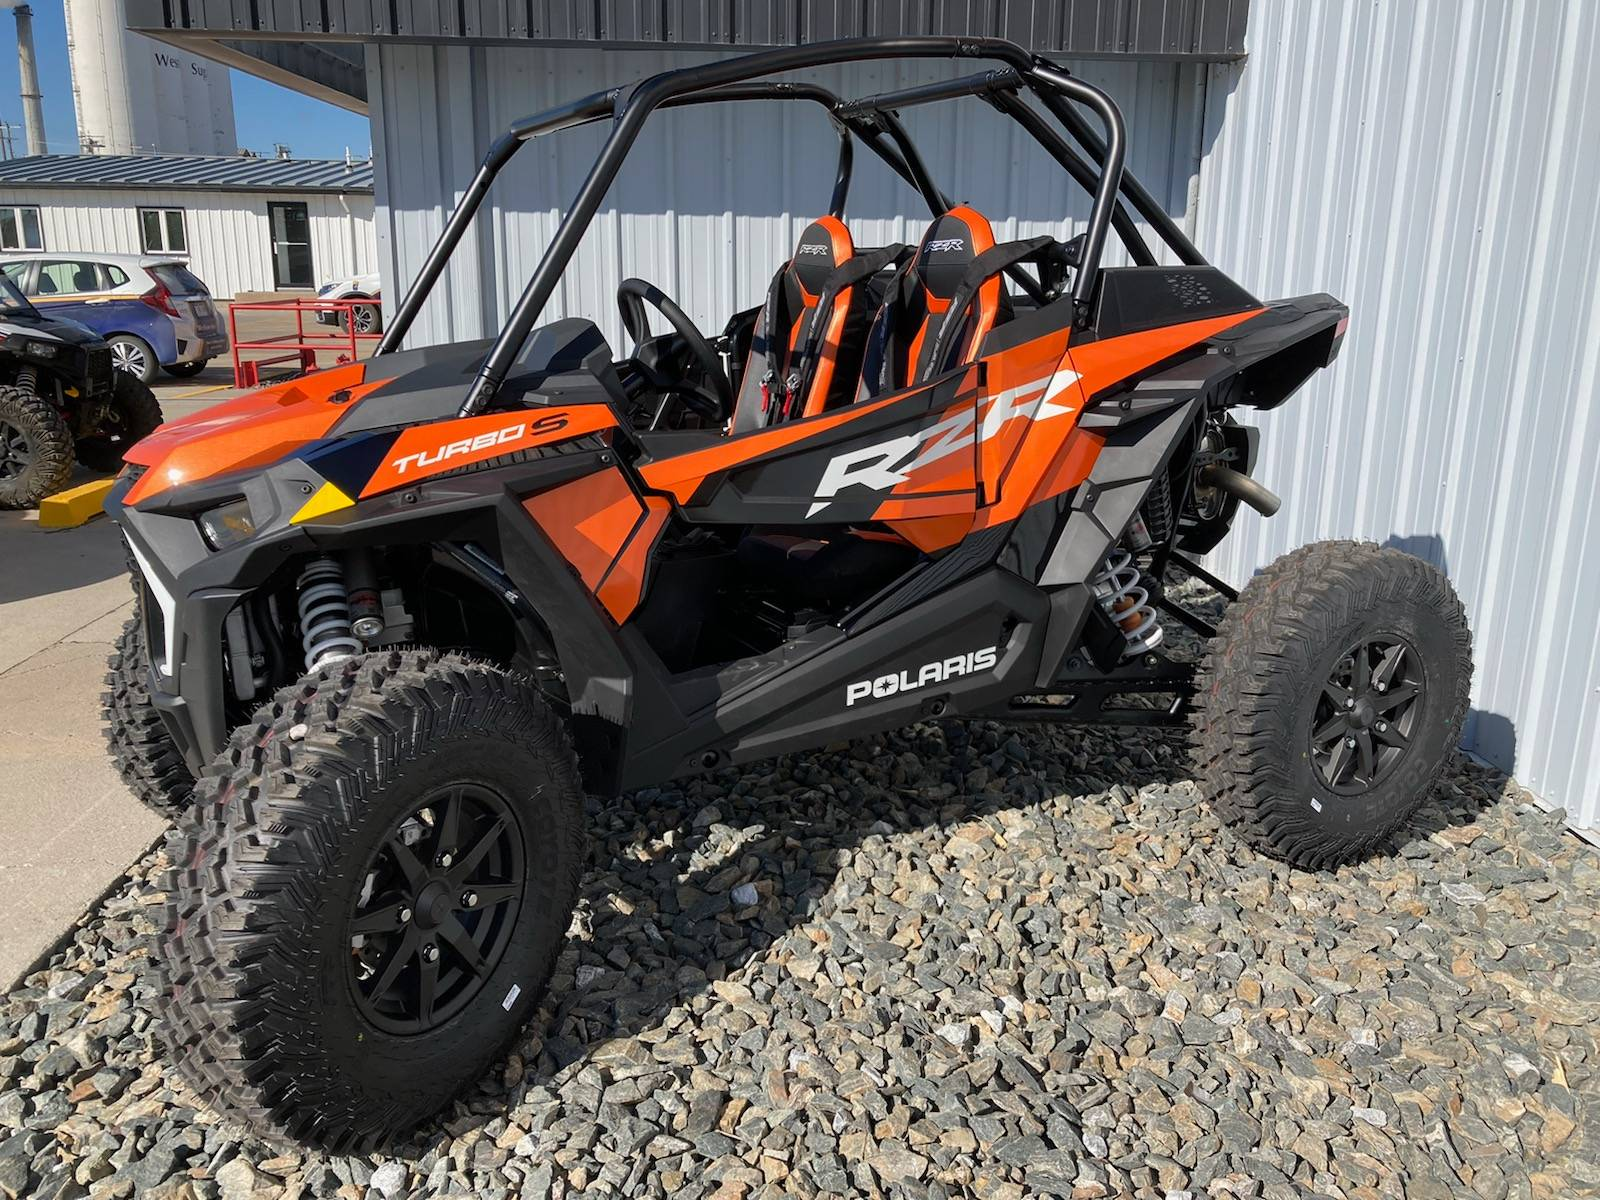 2021 Polaris RZR Turbo S Velocity in Scottsbluff, Nebraska - Photo 1